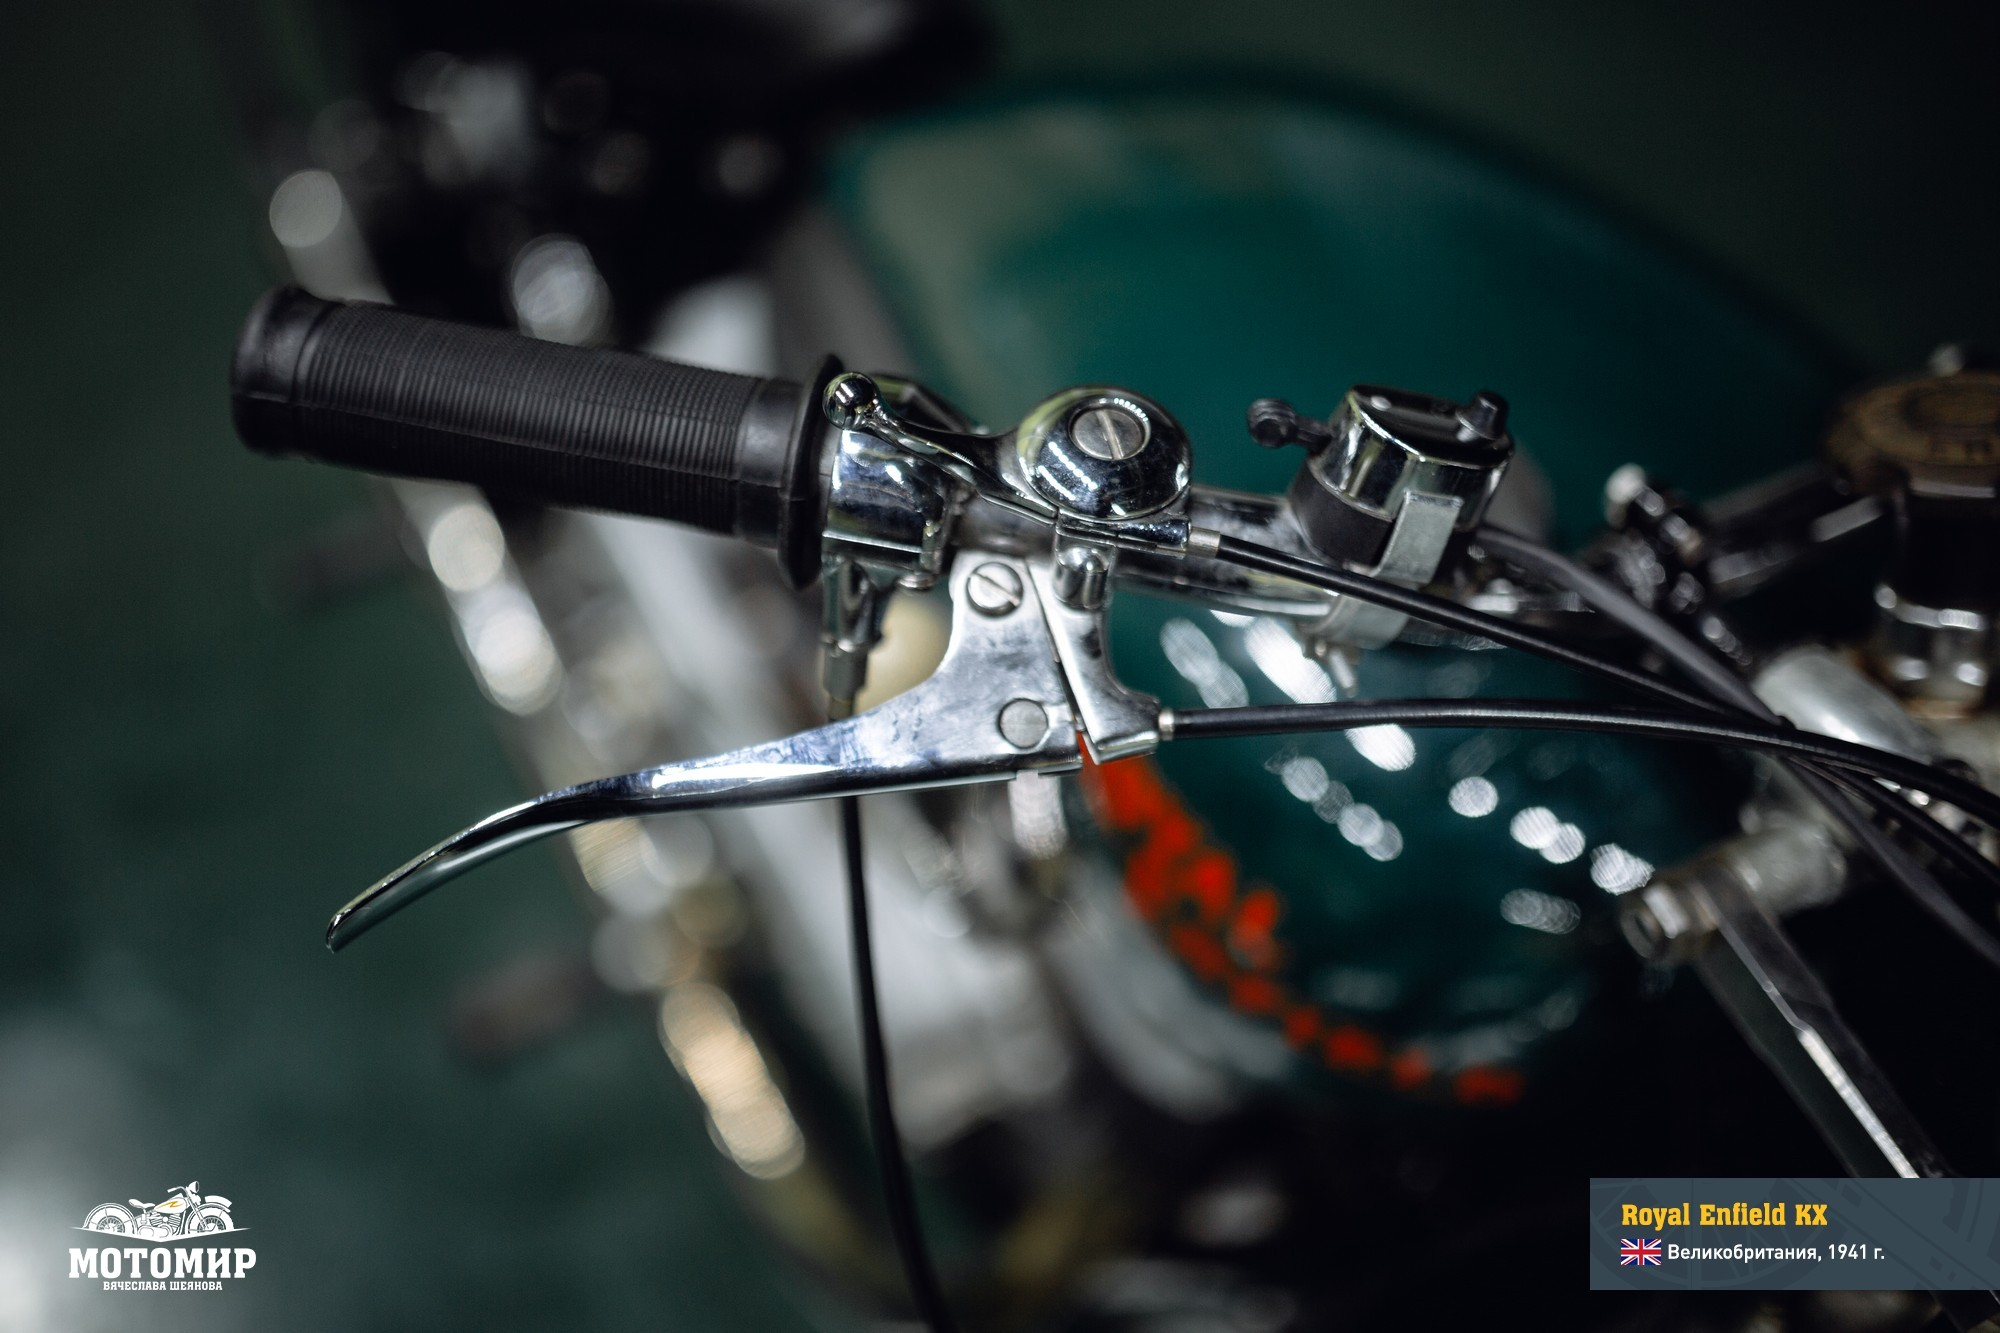 royal-enfield-kx-201601-web-32